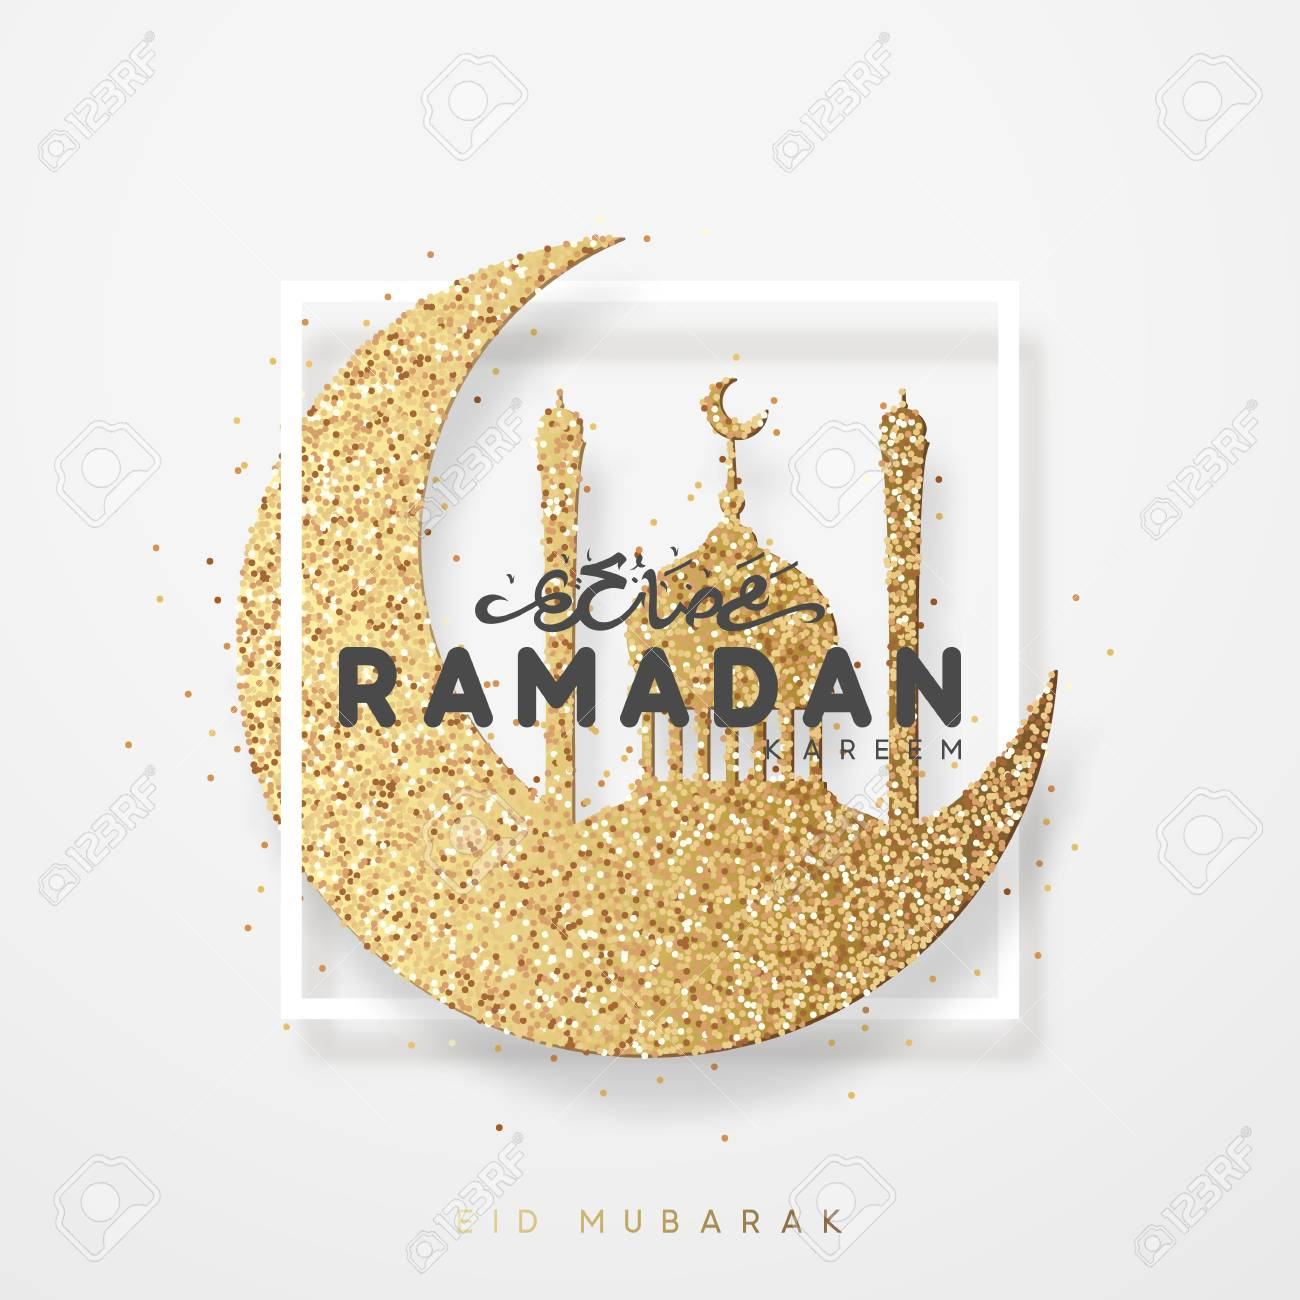 Ramadan greeting card with arabic calligraphy ramadan kareem ramadan greeting card with arabic calligraphy ramadan kareem islamic background half a month with mosques m4hsunfo